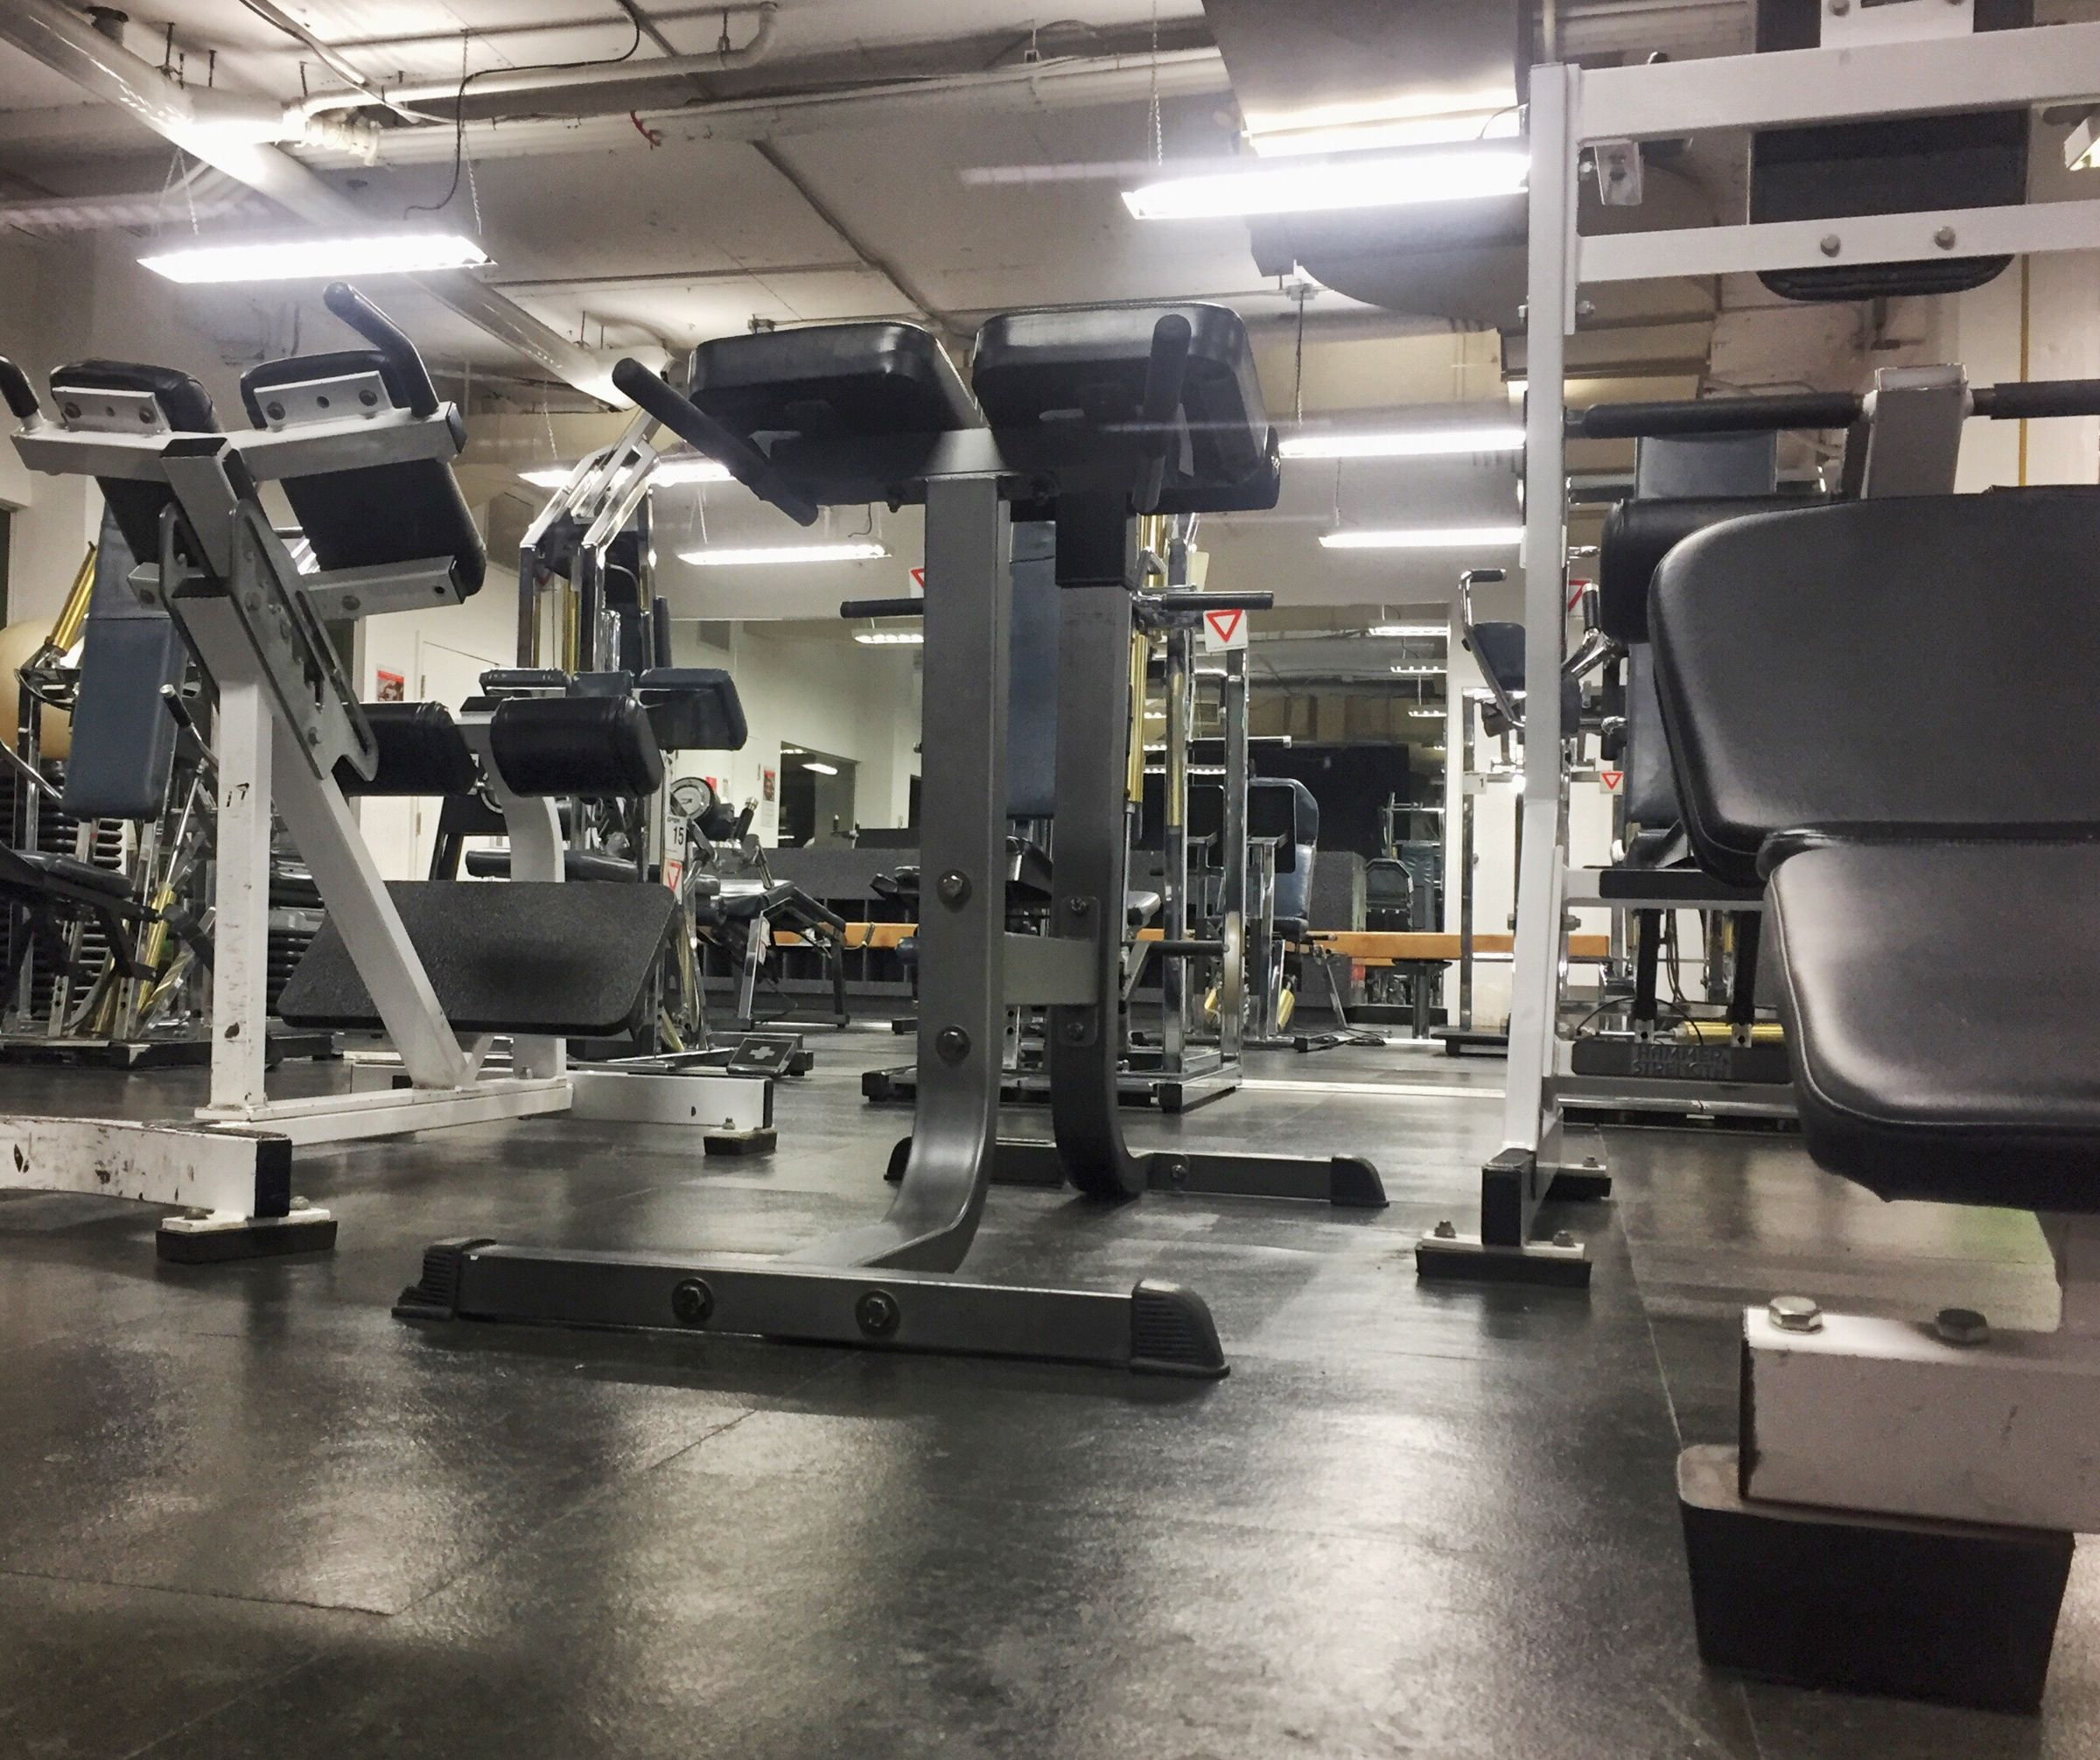 Gym Exercise Room Exercise Time Machines Apparel Environment Exercise Time Healthy Muscle Building Equipment Indoors  Metallic No People